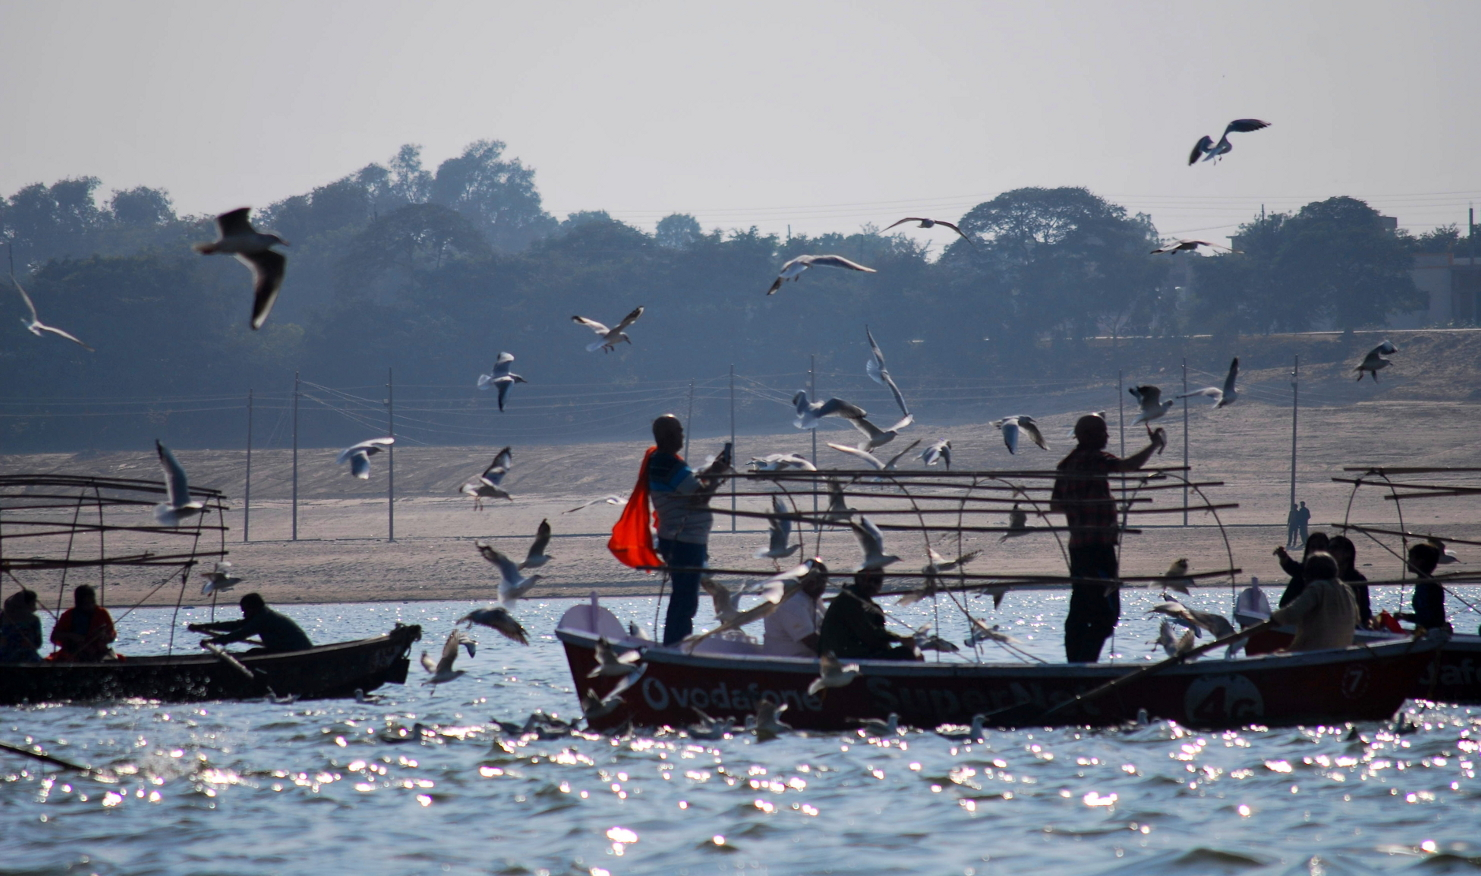 During boating at Triveni Sangam at Allahabad I have taken from this picture from a running boat. I deem the place  may be called as Bird's paradise.